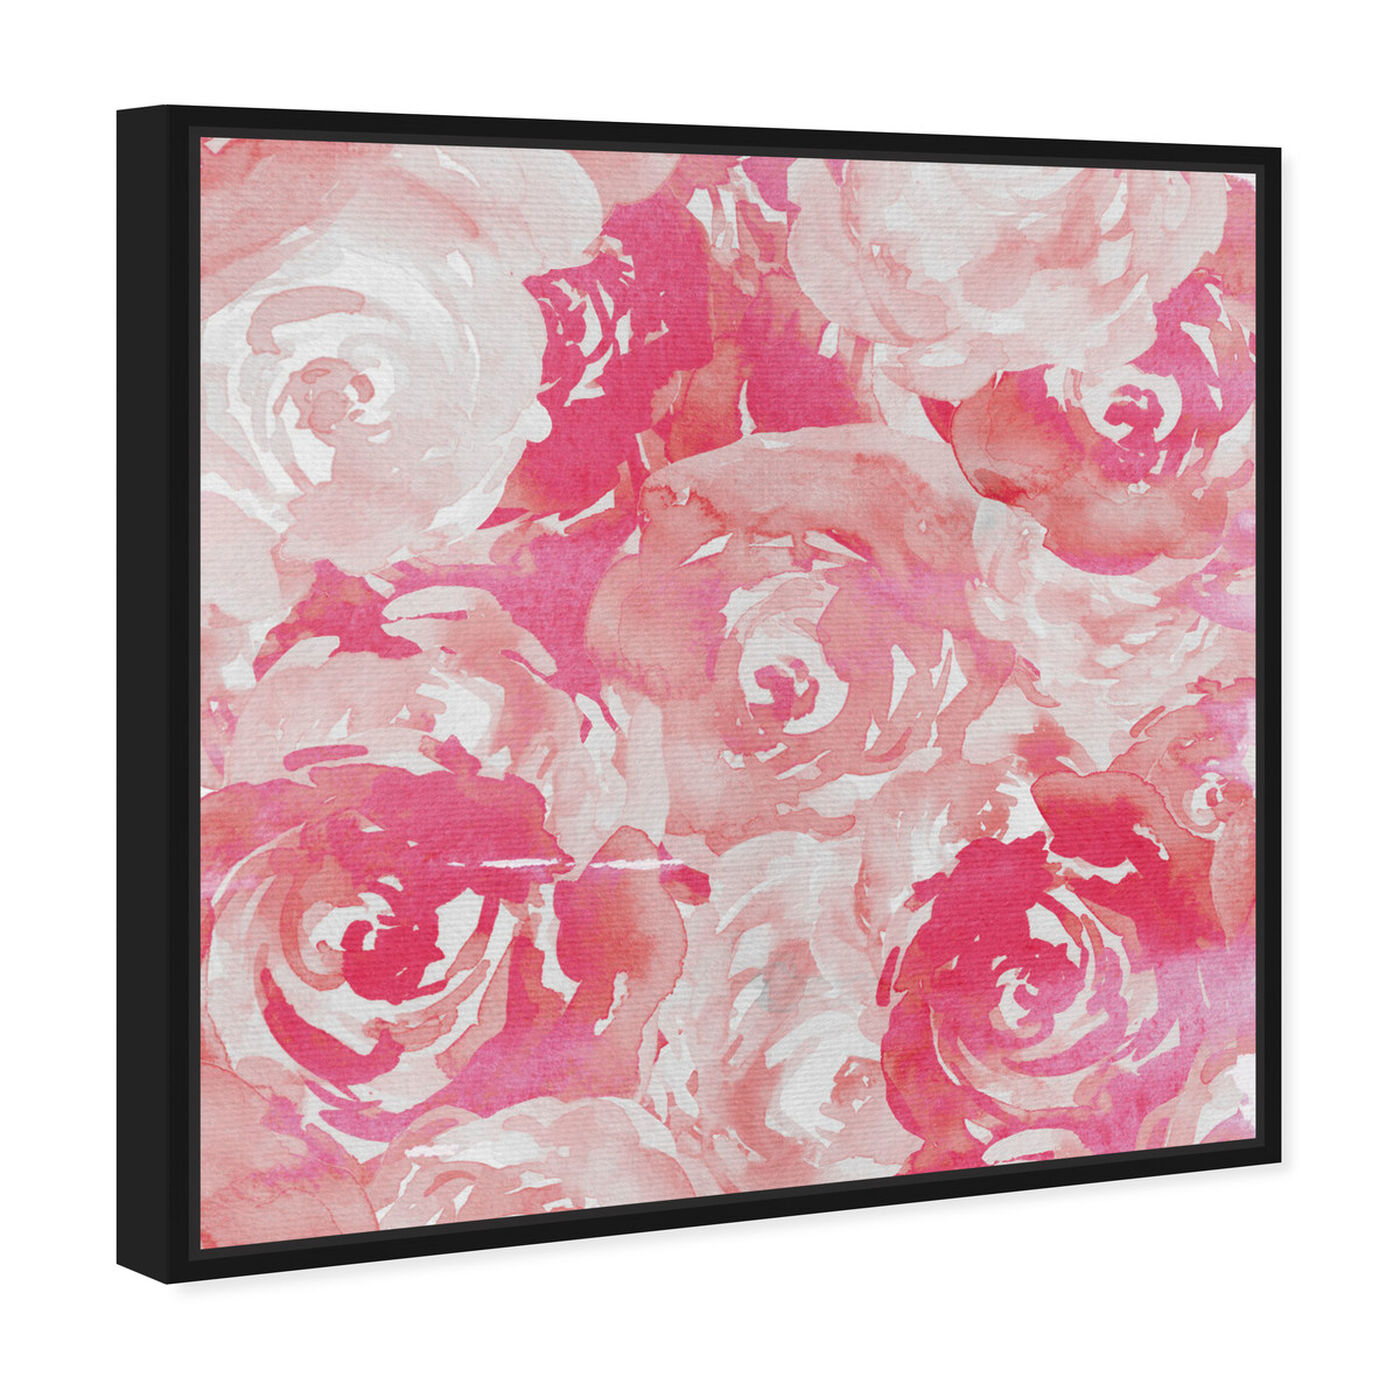 Angled view of Pink Roses featuring floral and botanical and florals art.